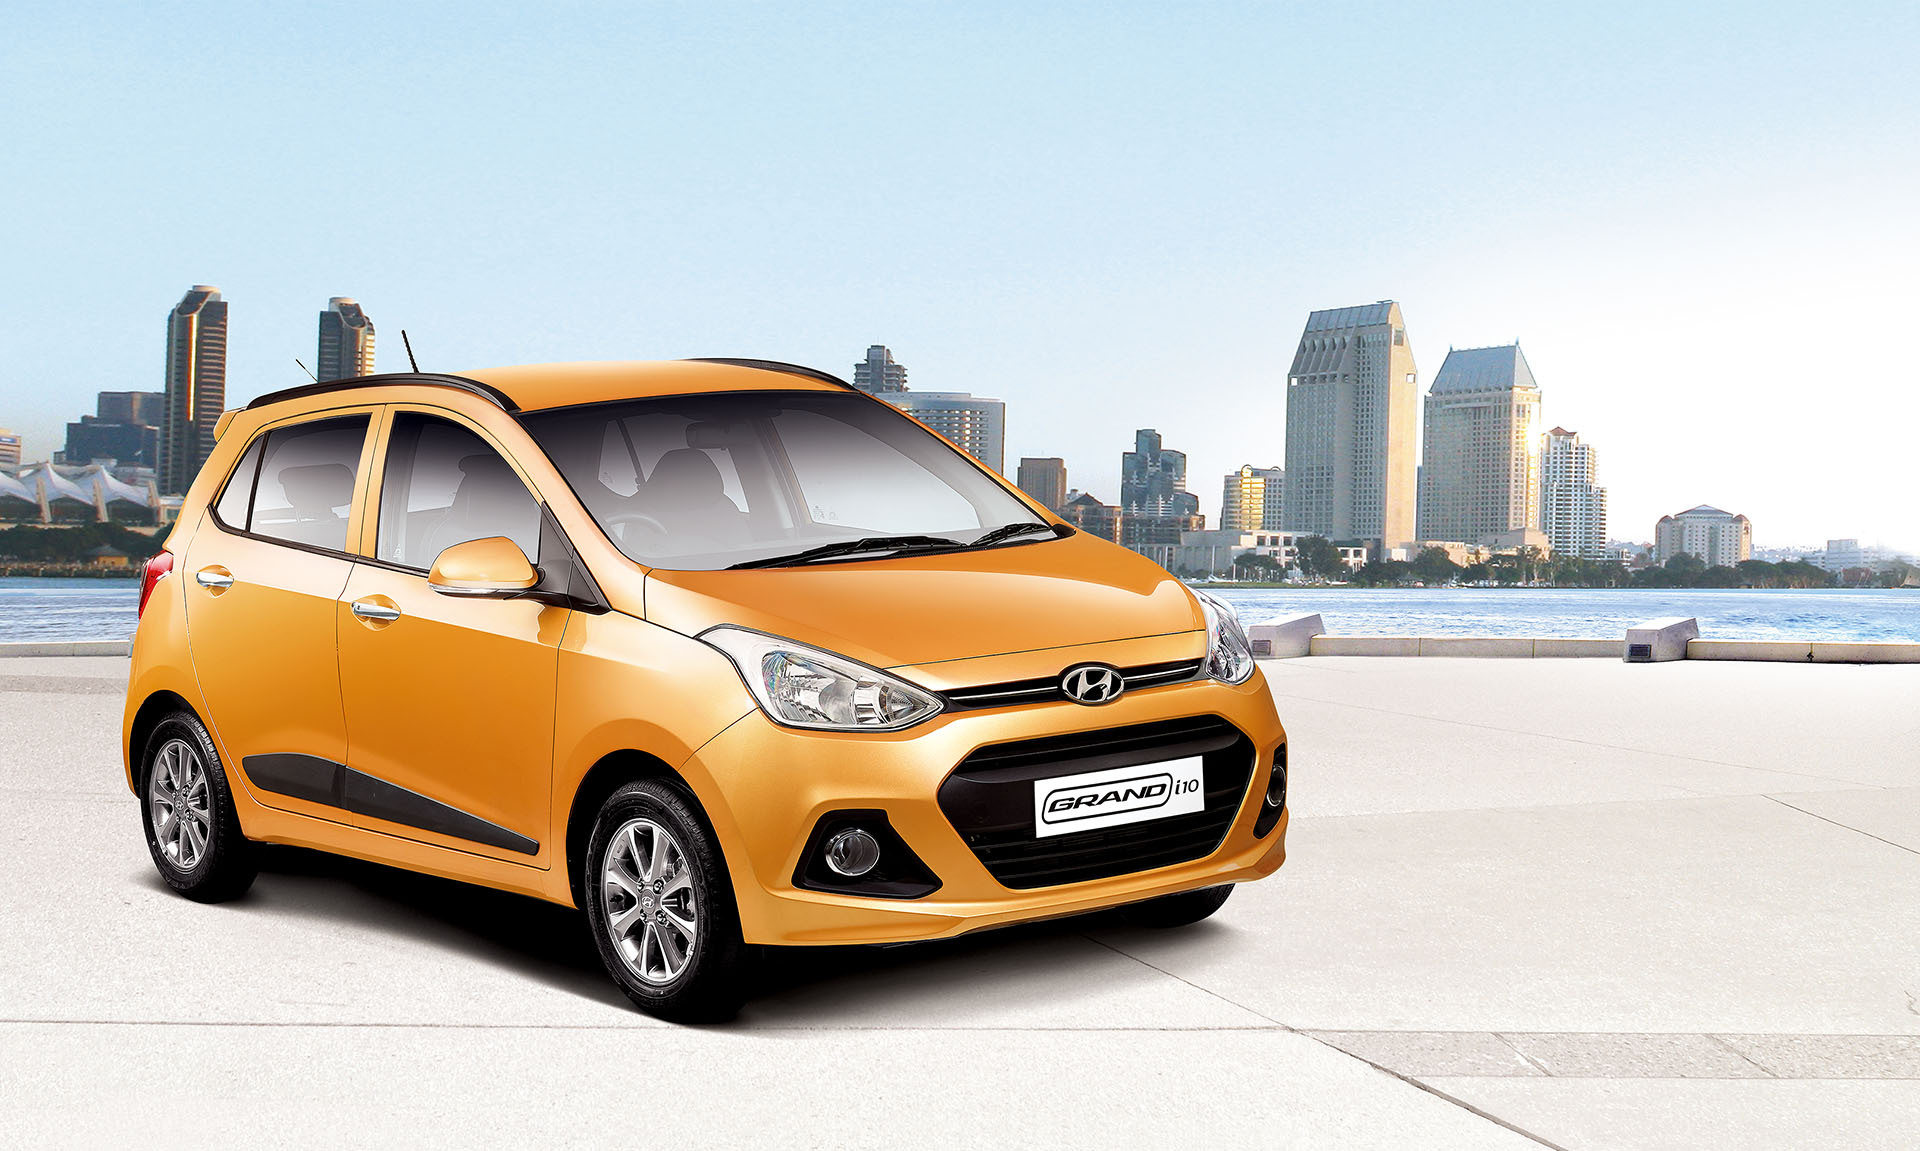 Hyundai Grand i10 Automatic Exteriors Top View